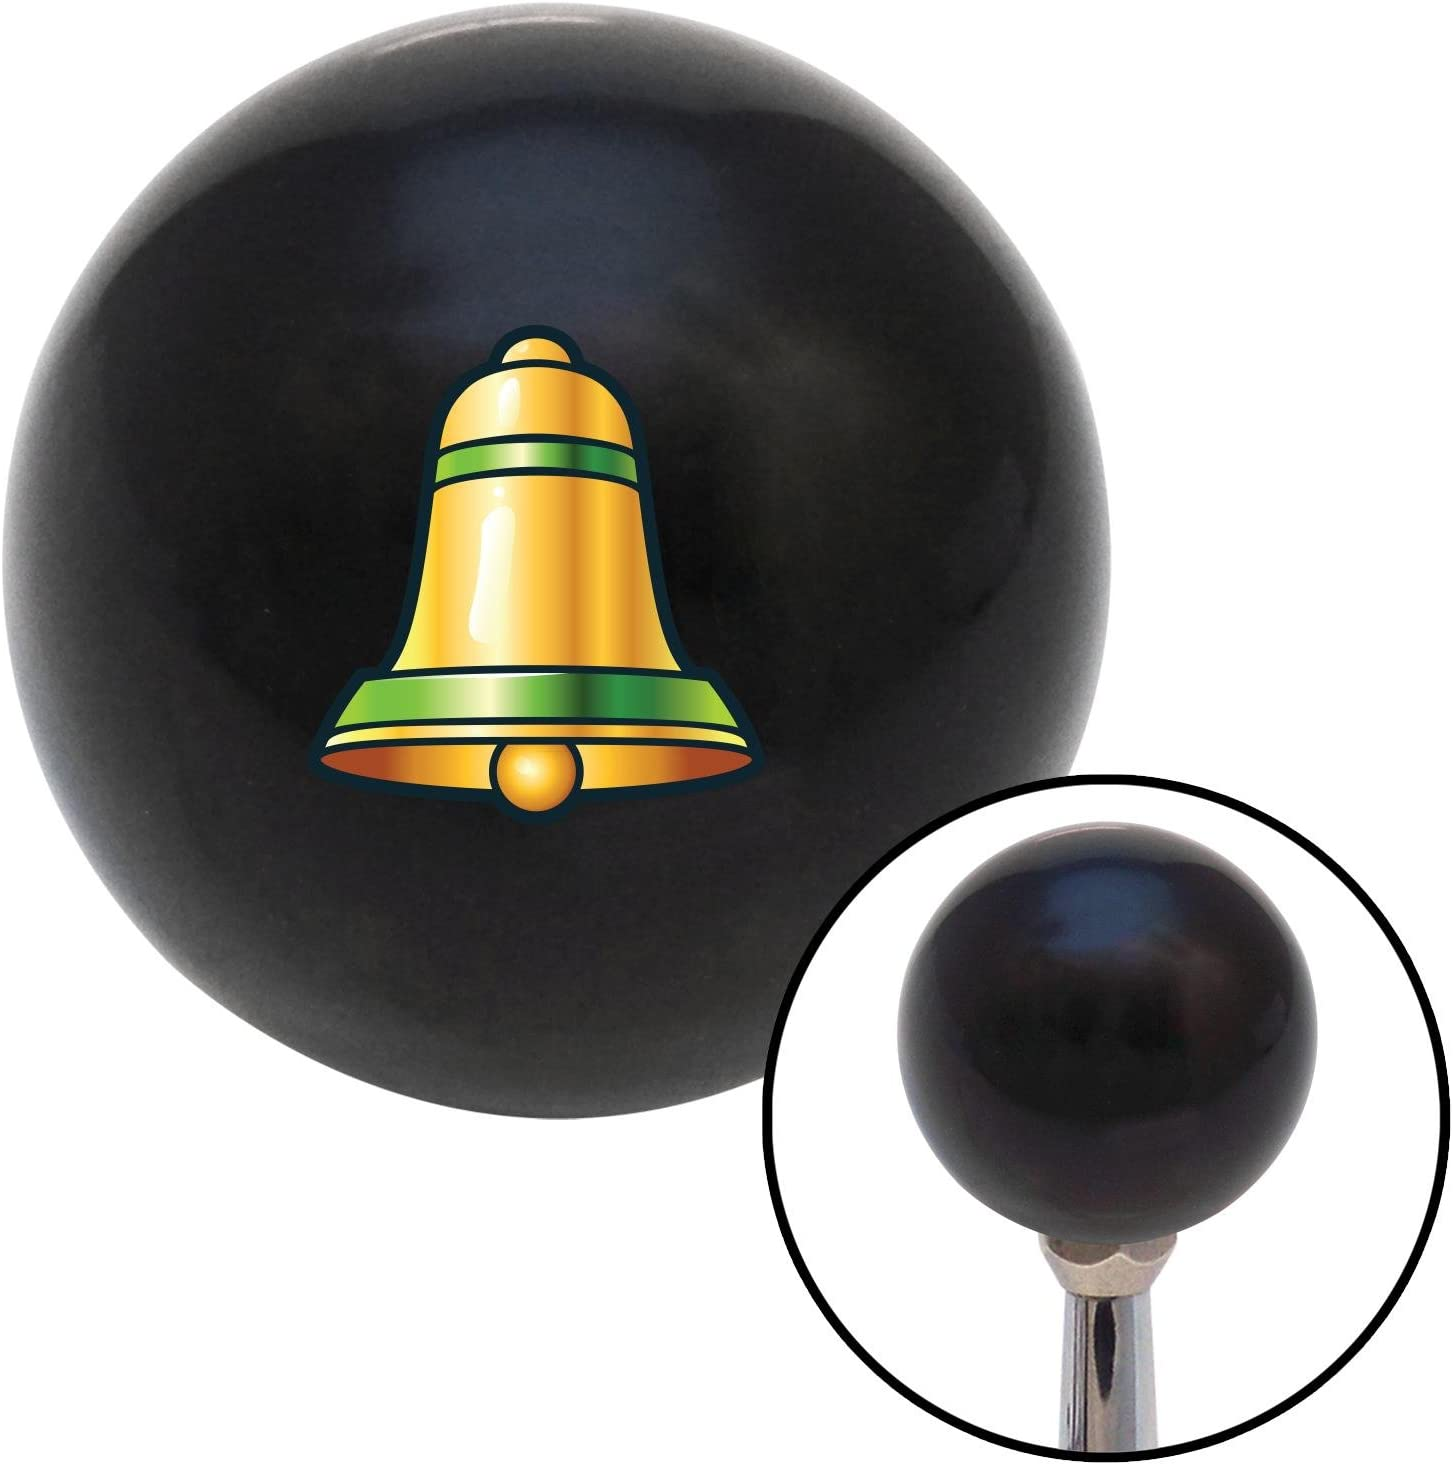 American Shifter 109532 Black Shift Knob with M16 x 1.5 Insert Bell